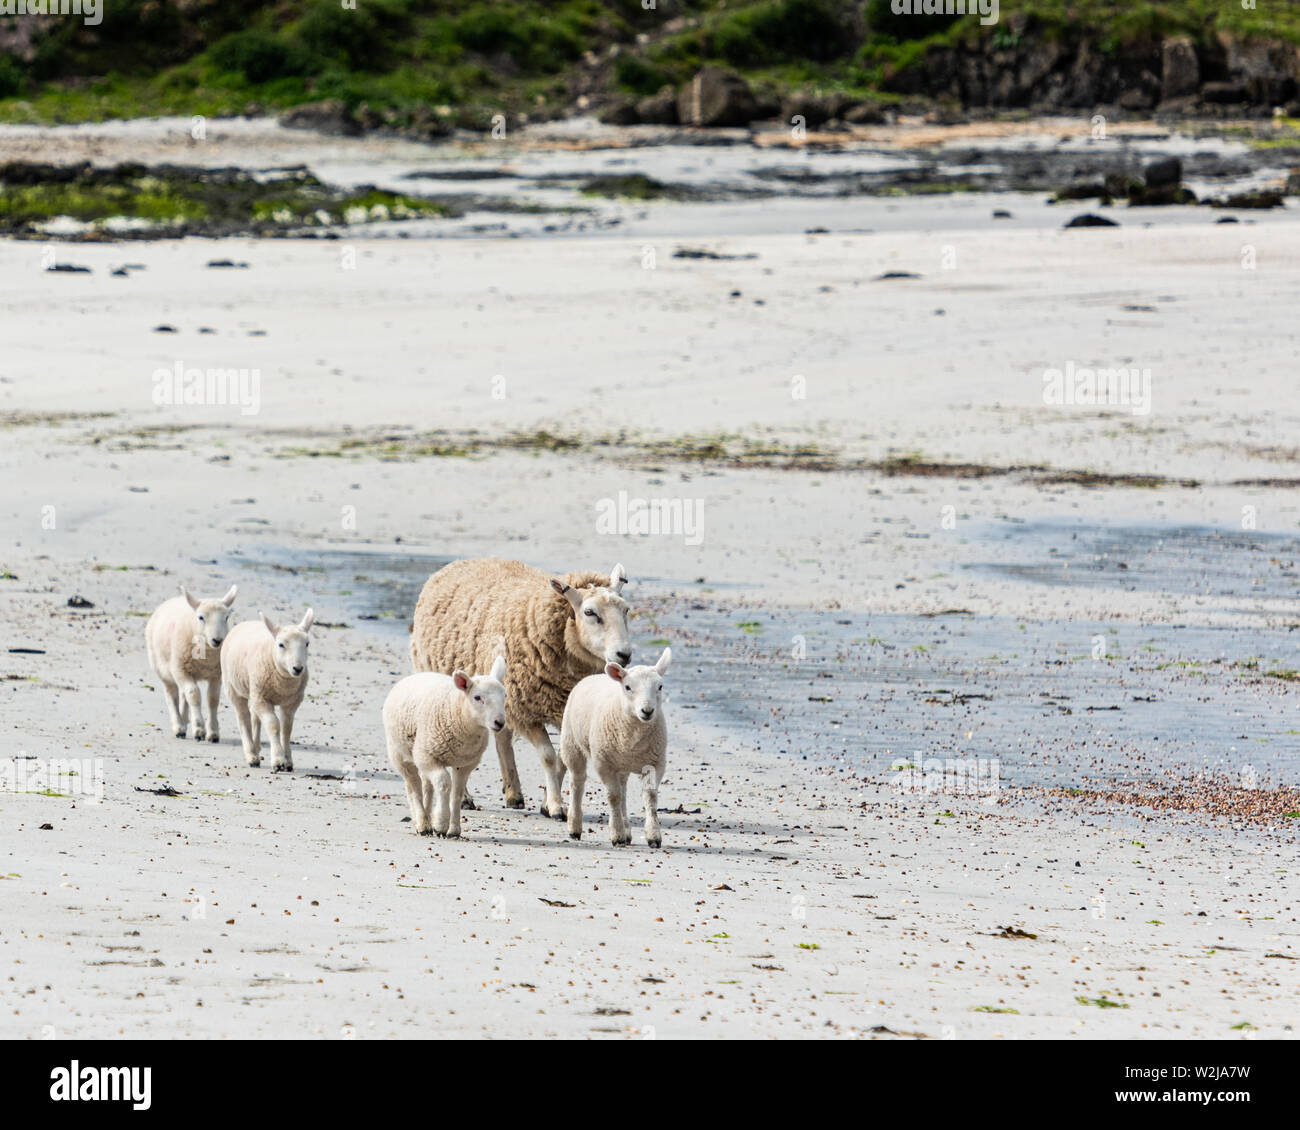 A sheep and its lambs enjoying the sun on a sandy beach on the Isle of Muck which is part of the Small Isles in Inner Hebrides, Scotland - Stock Image